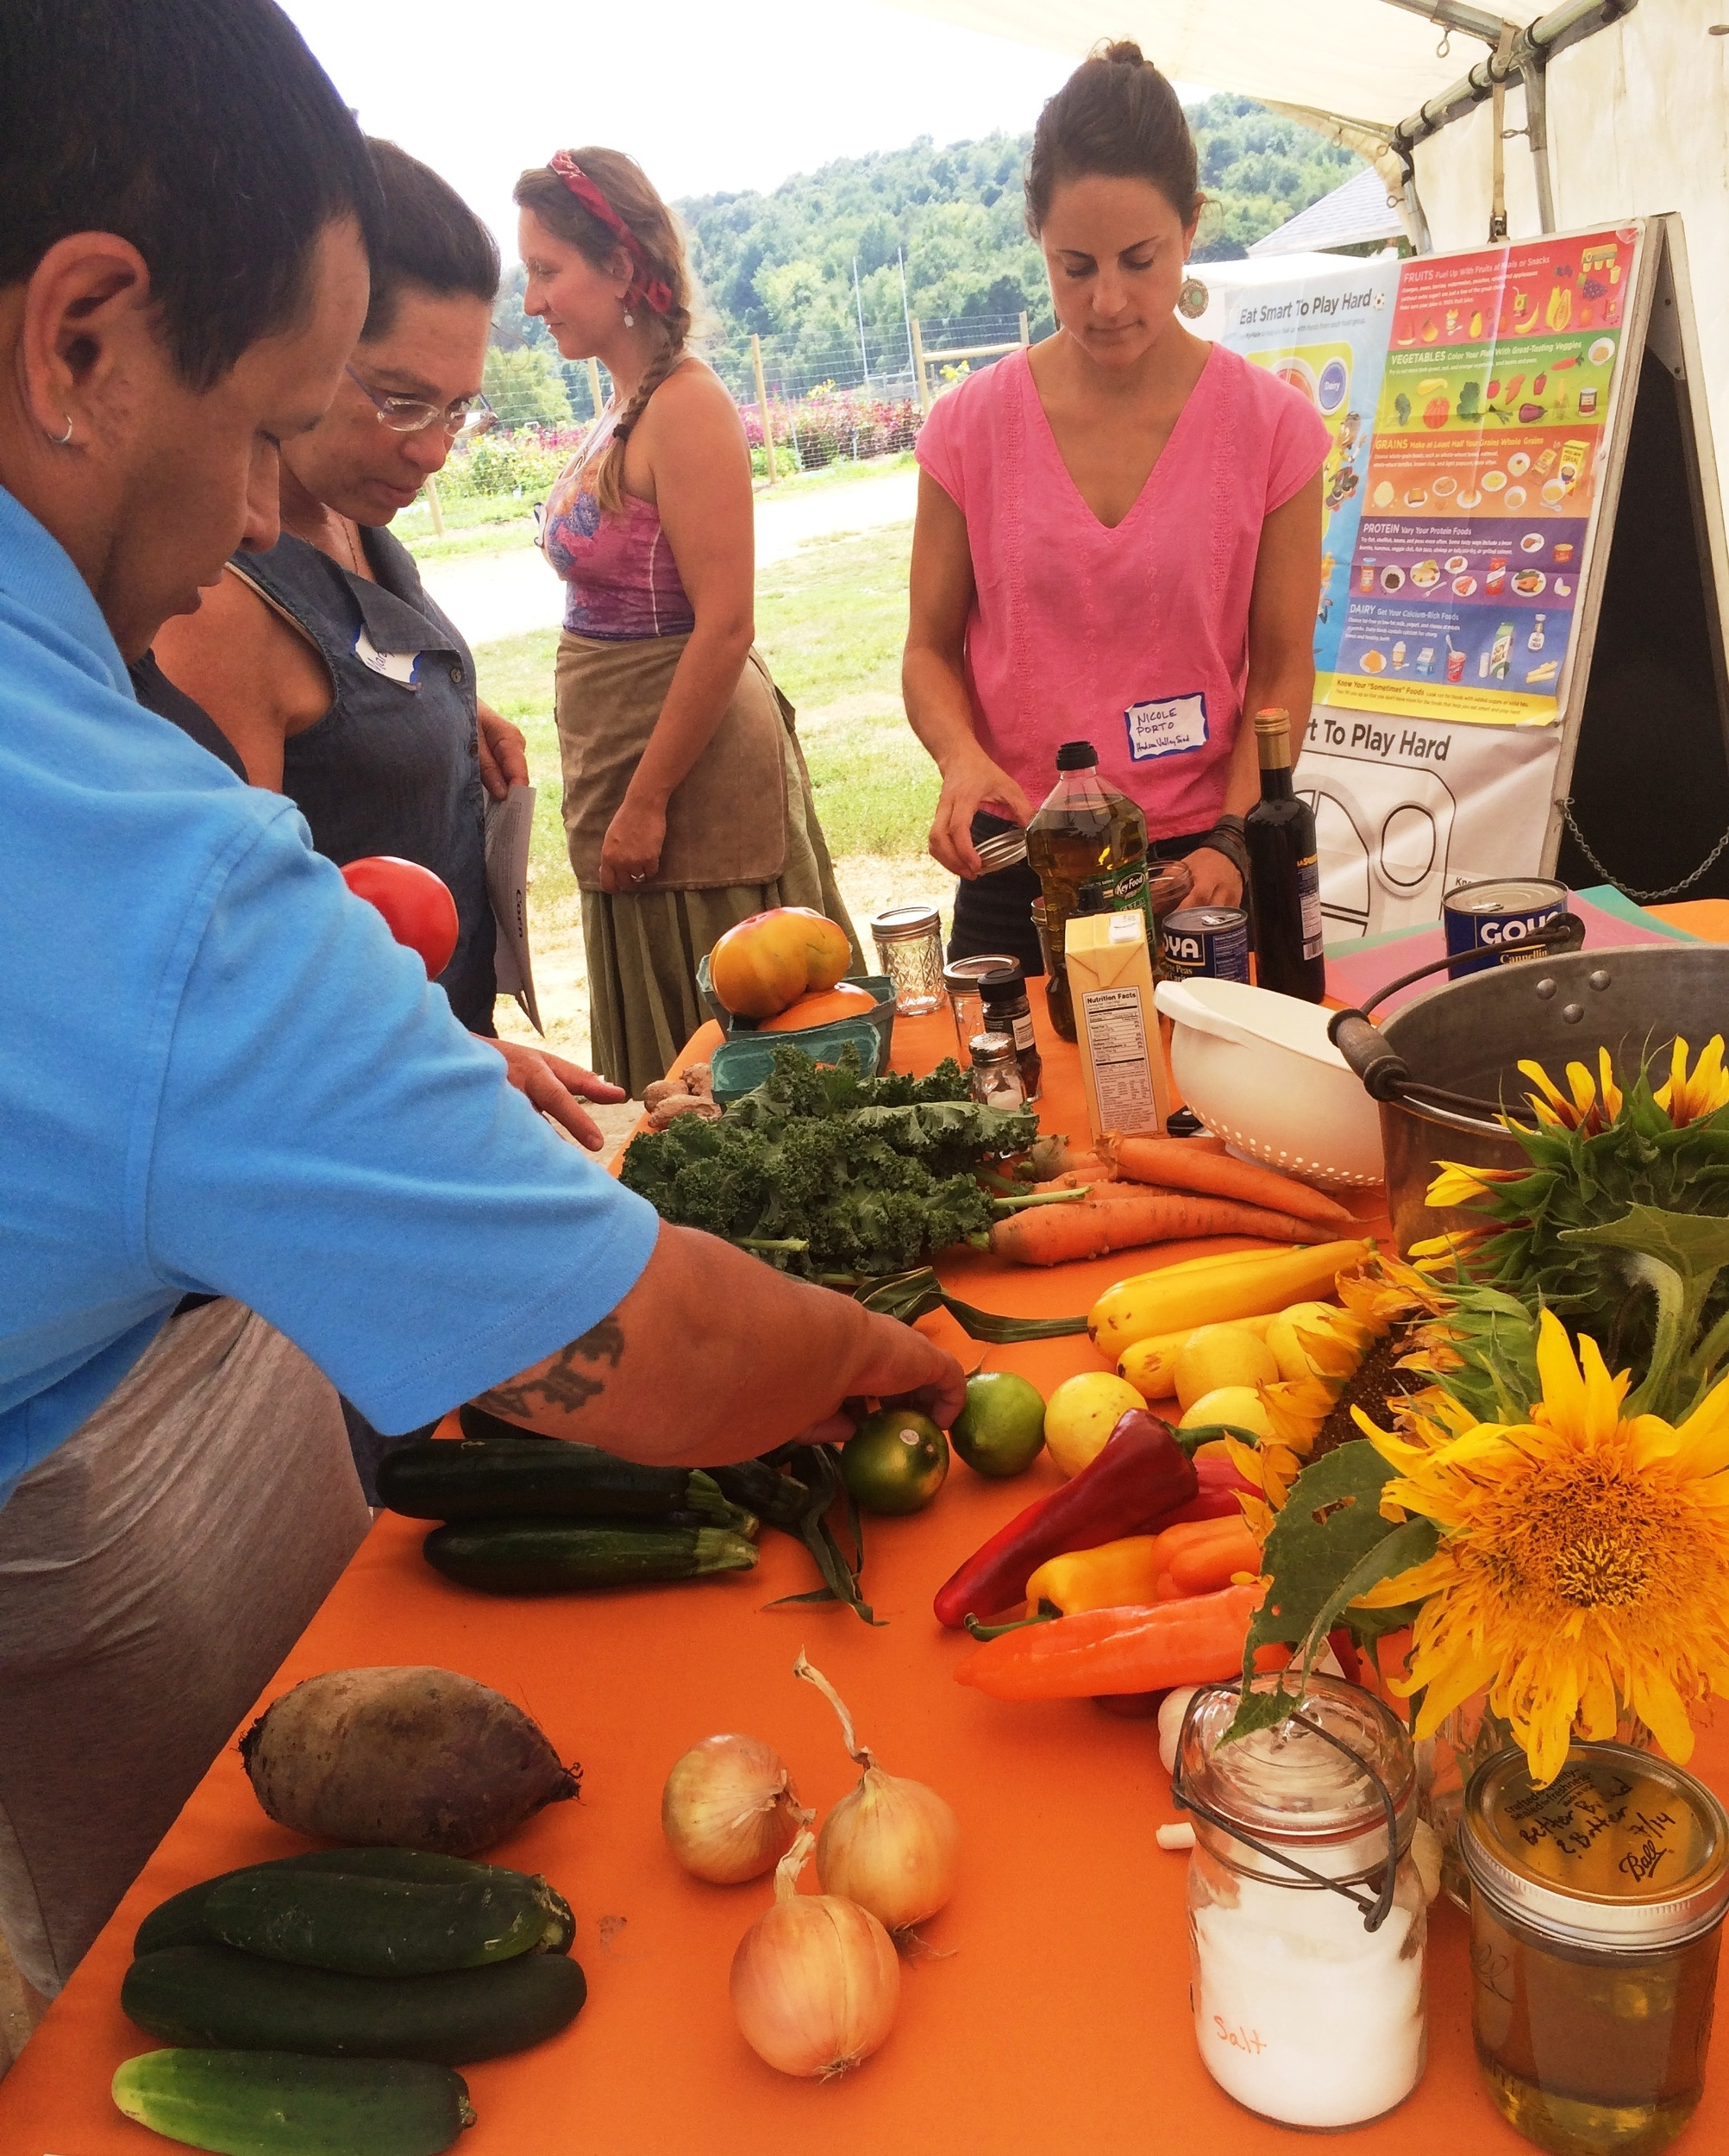 Using Gardens to Teach participants select vegetables for their teams to use in preparing healthy snacks.